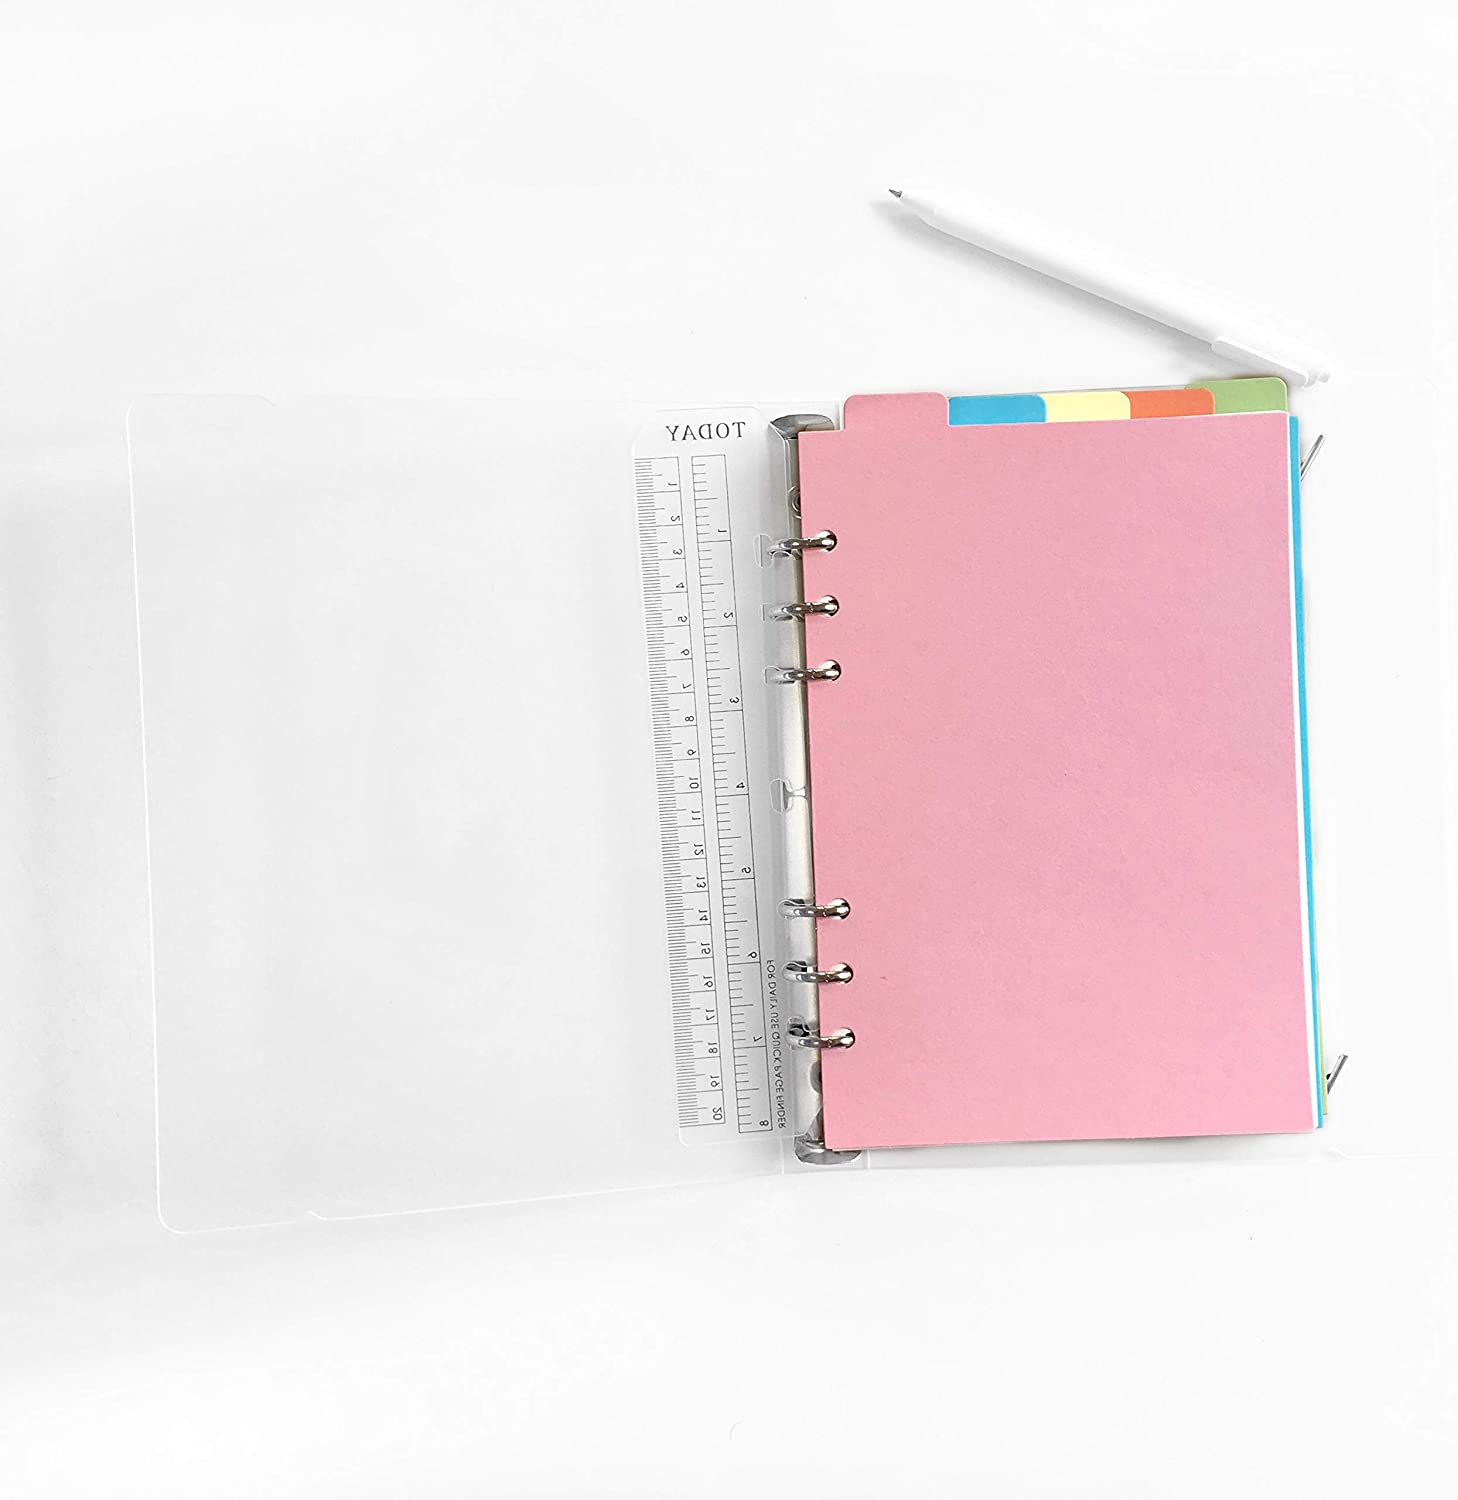 Binder Index PP /& Paper Dividers for 8.5 inch//6 inch A5//A6 6-Holes Cover Ring Binder A Sunny Planner, A6//17cm10cm//6 Inch